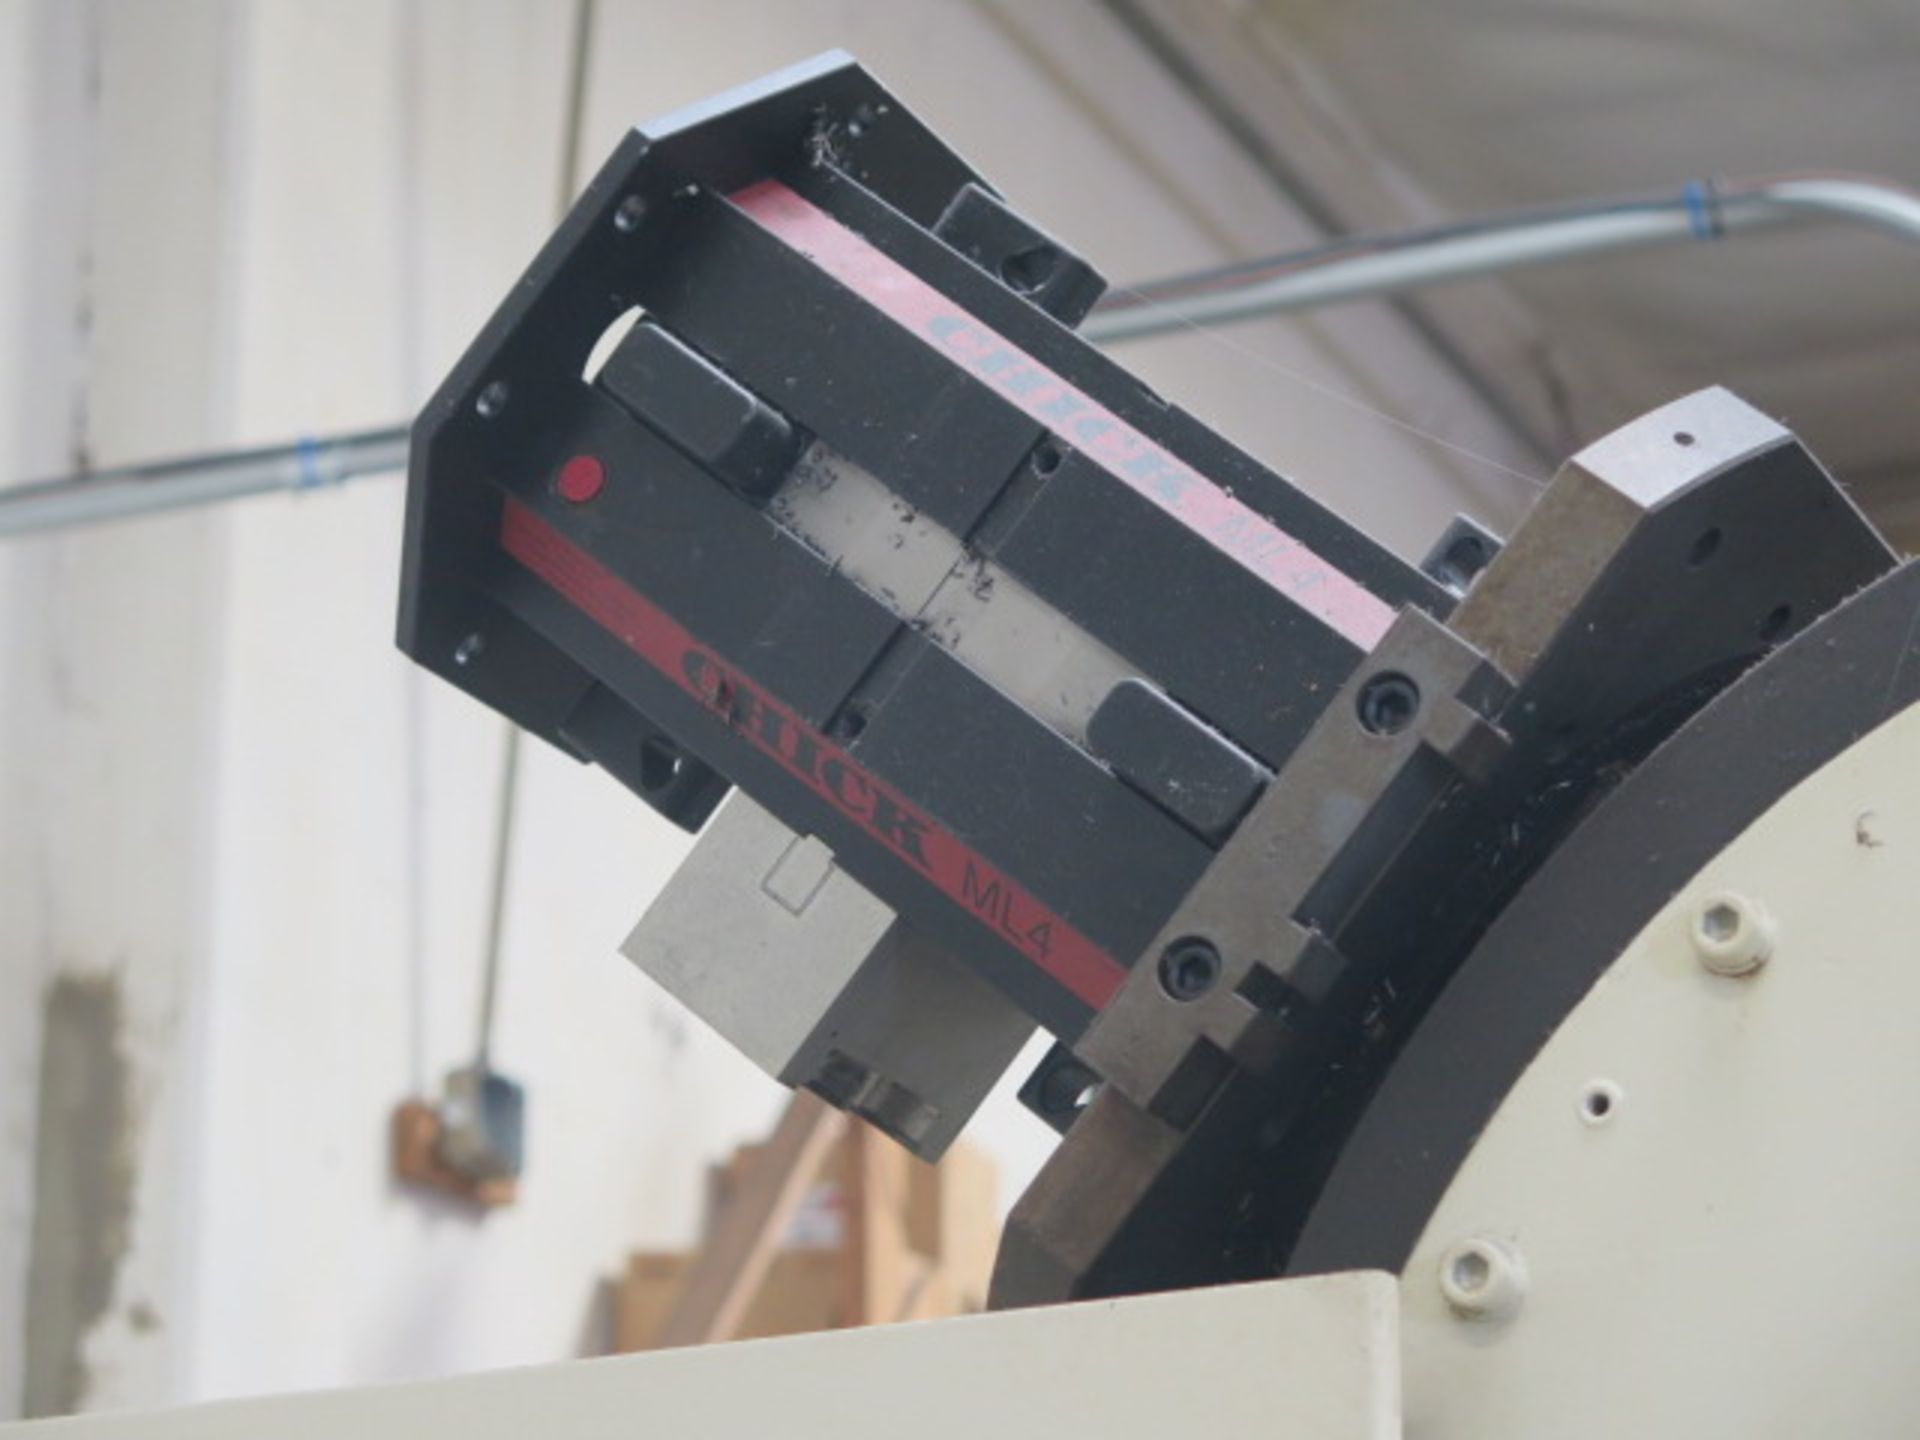 Tsugami MS3.10P Type MA3H 4-Axis 10-Pallet CNC HMC (HAS X-AXIS PROBLEM), SOLD AS IS - Image 12 of 20